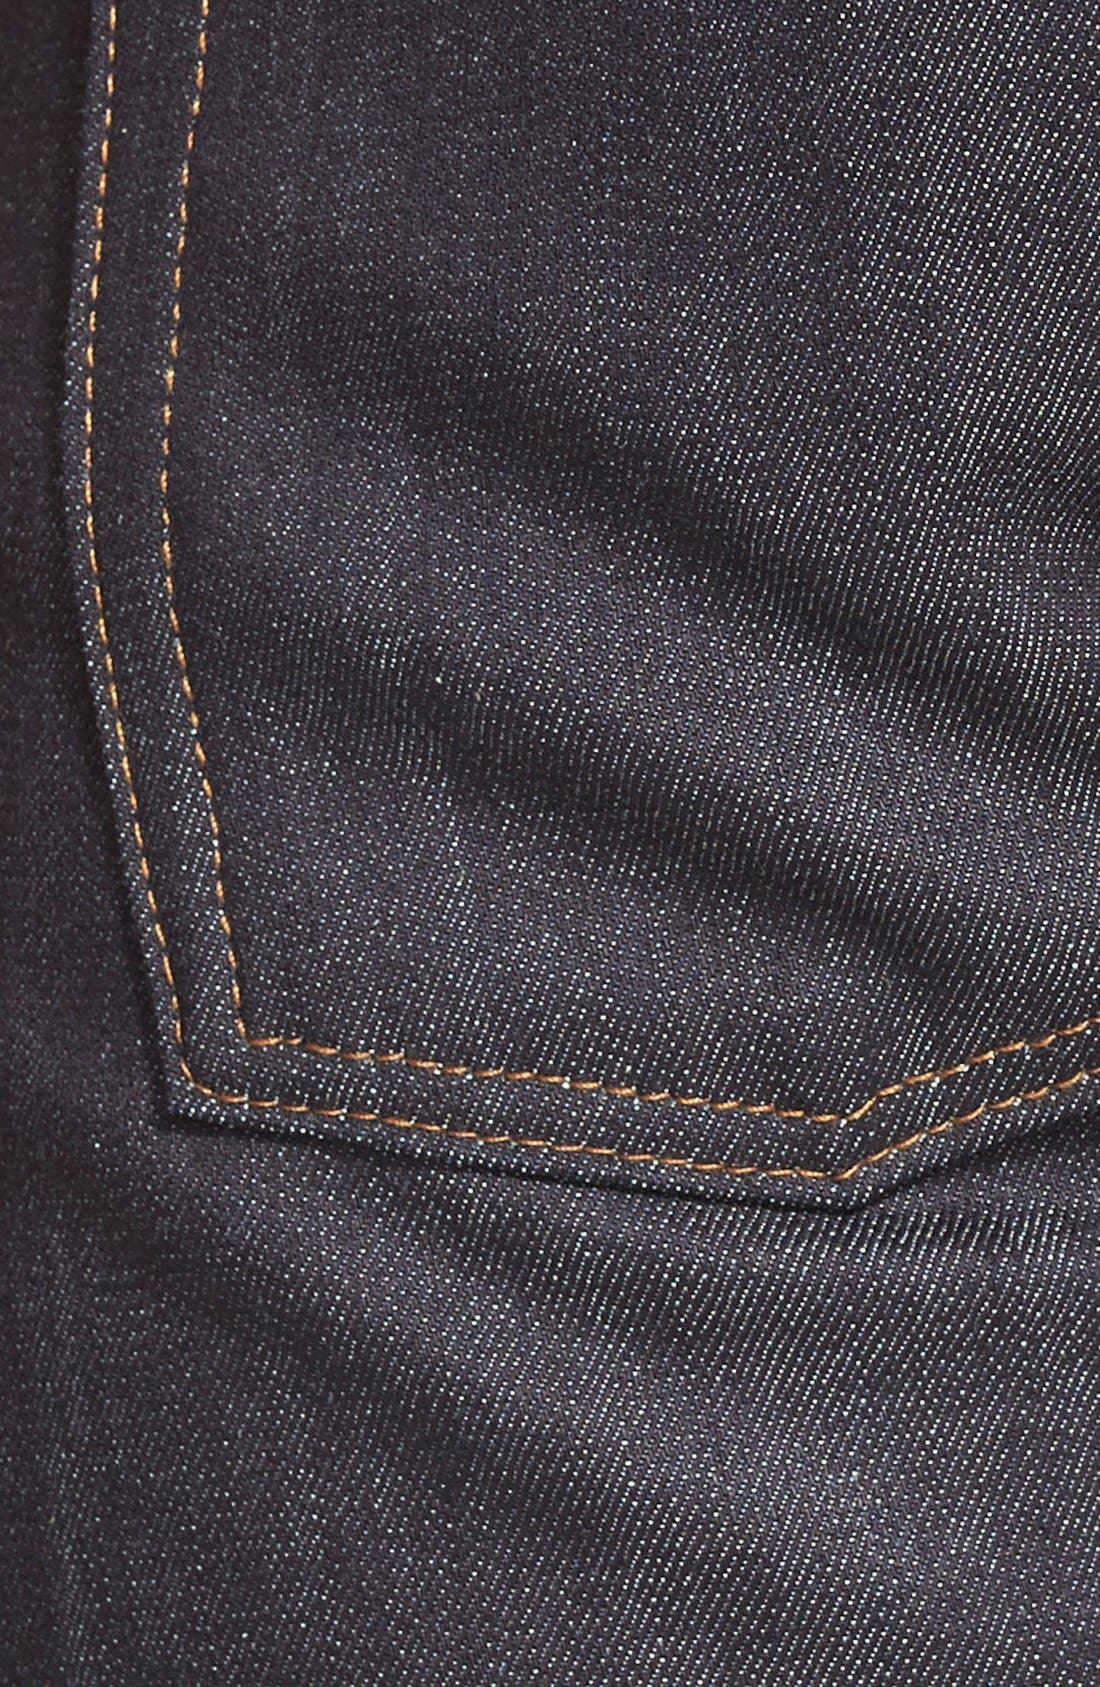 'Weird Guy' Slim Fit Jeans,                             Alternate thumbnail 2, color,                             401